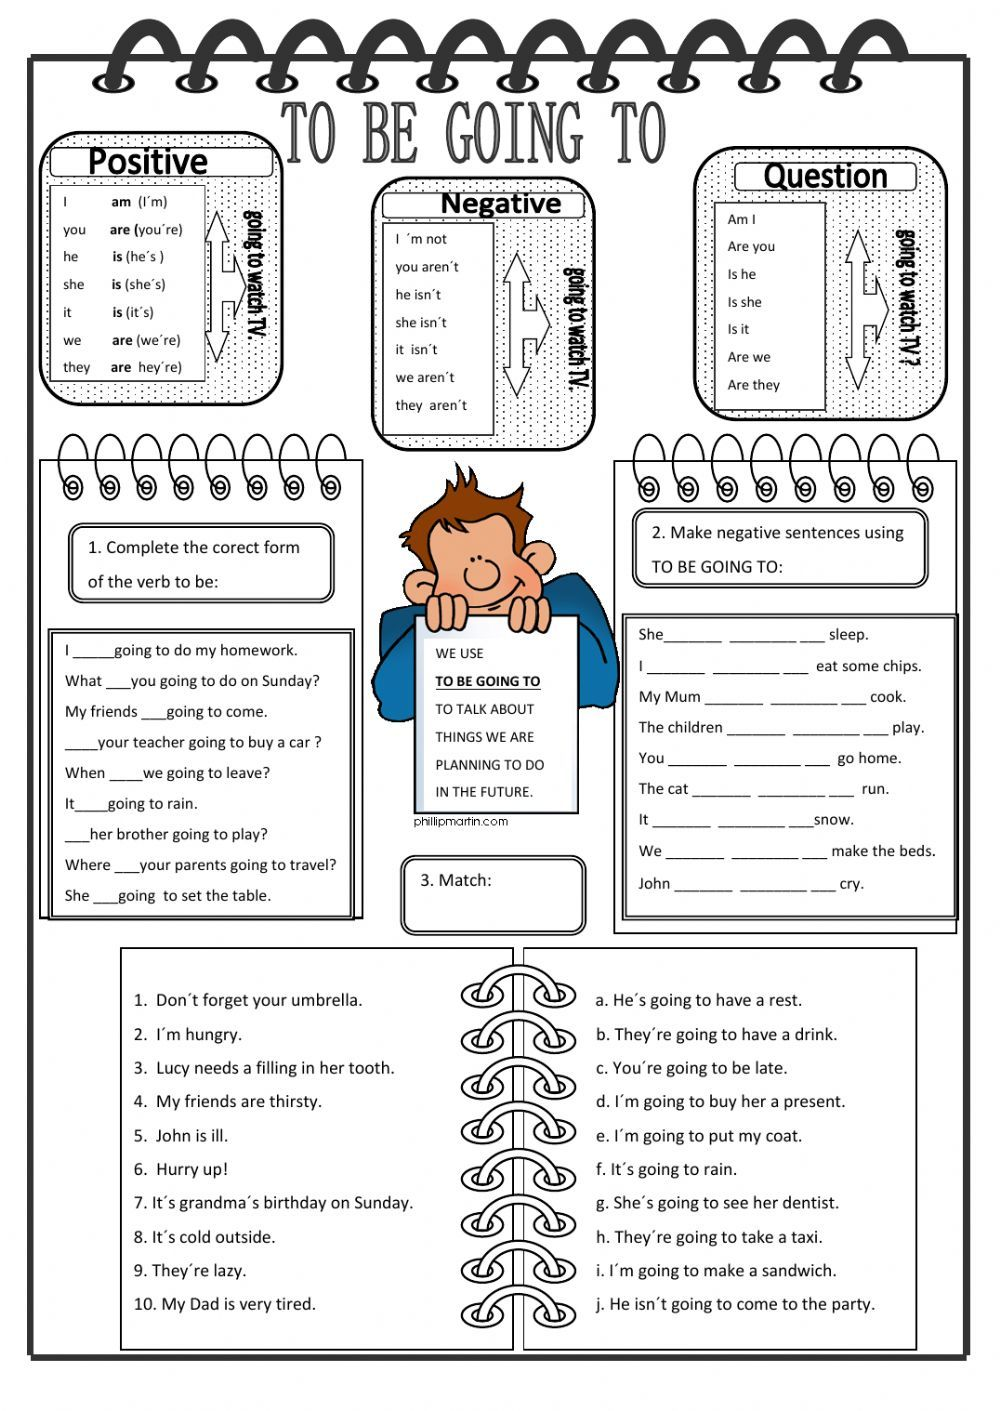 To be going to interactive and downloadable worksheet. You ...